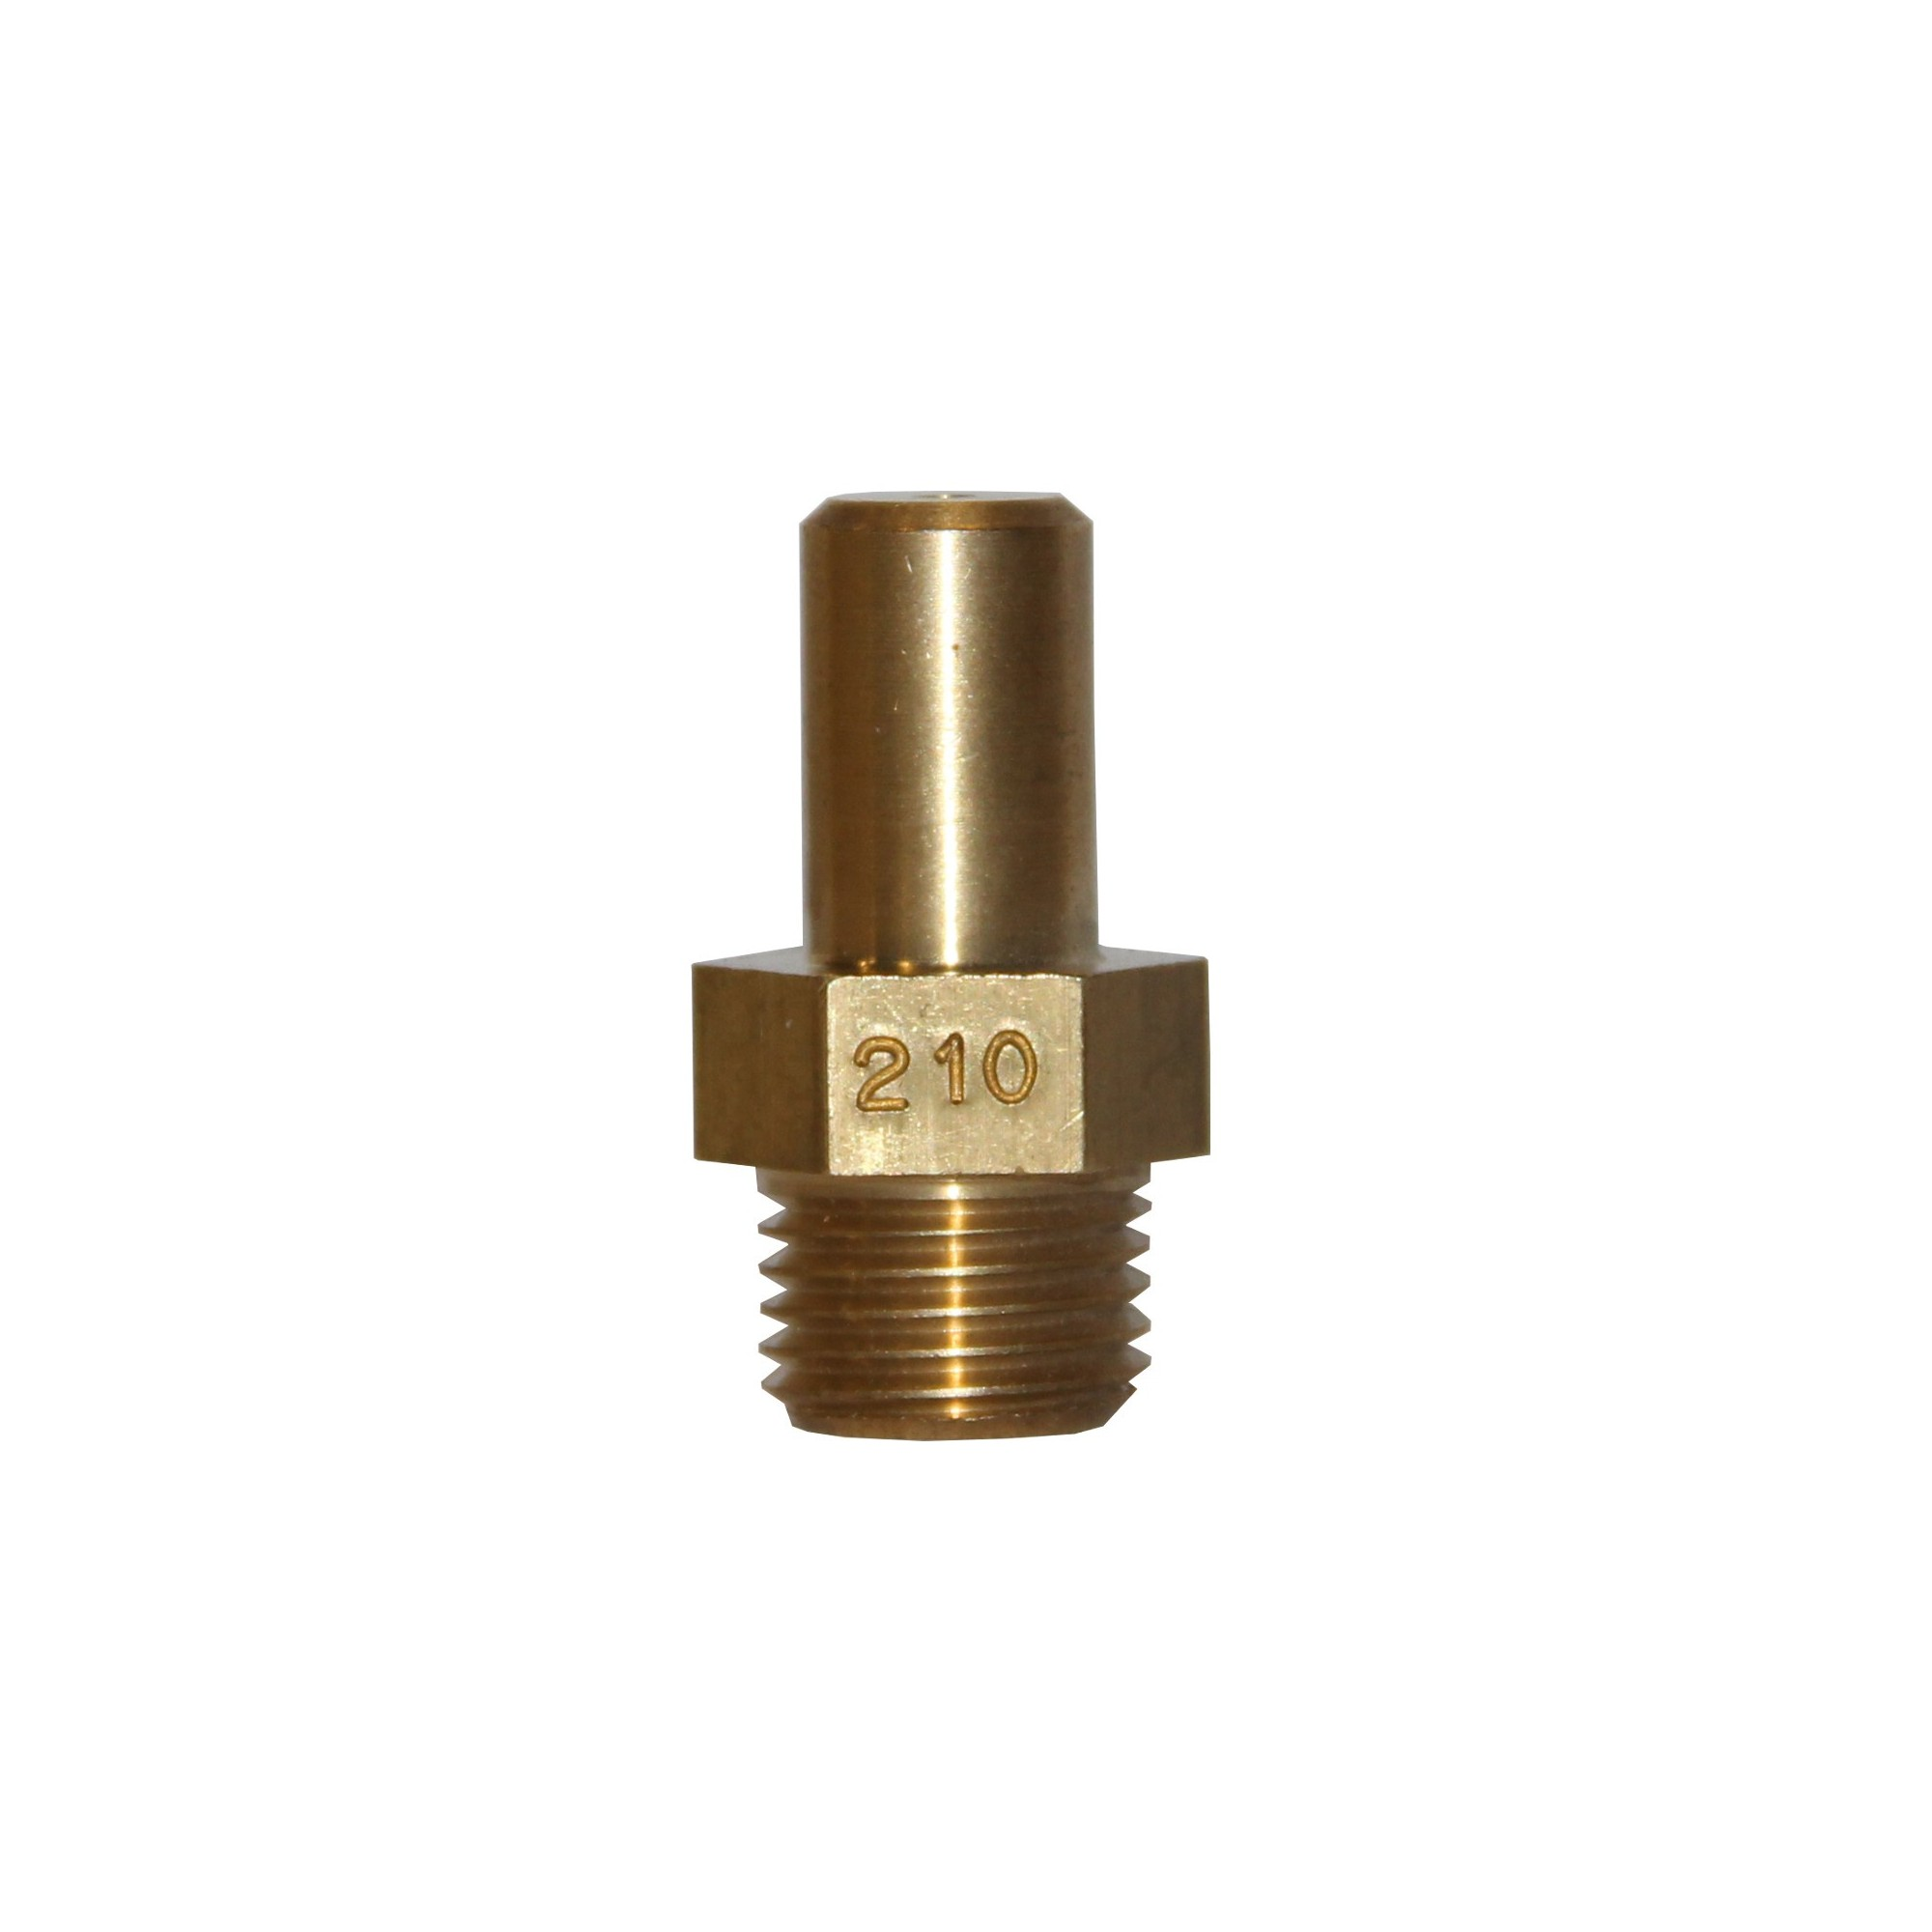 HEAD INJECTOR GAS : 210 × 22